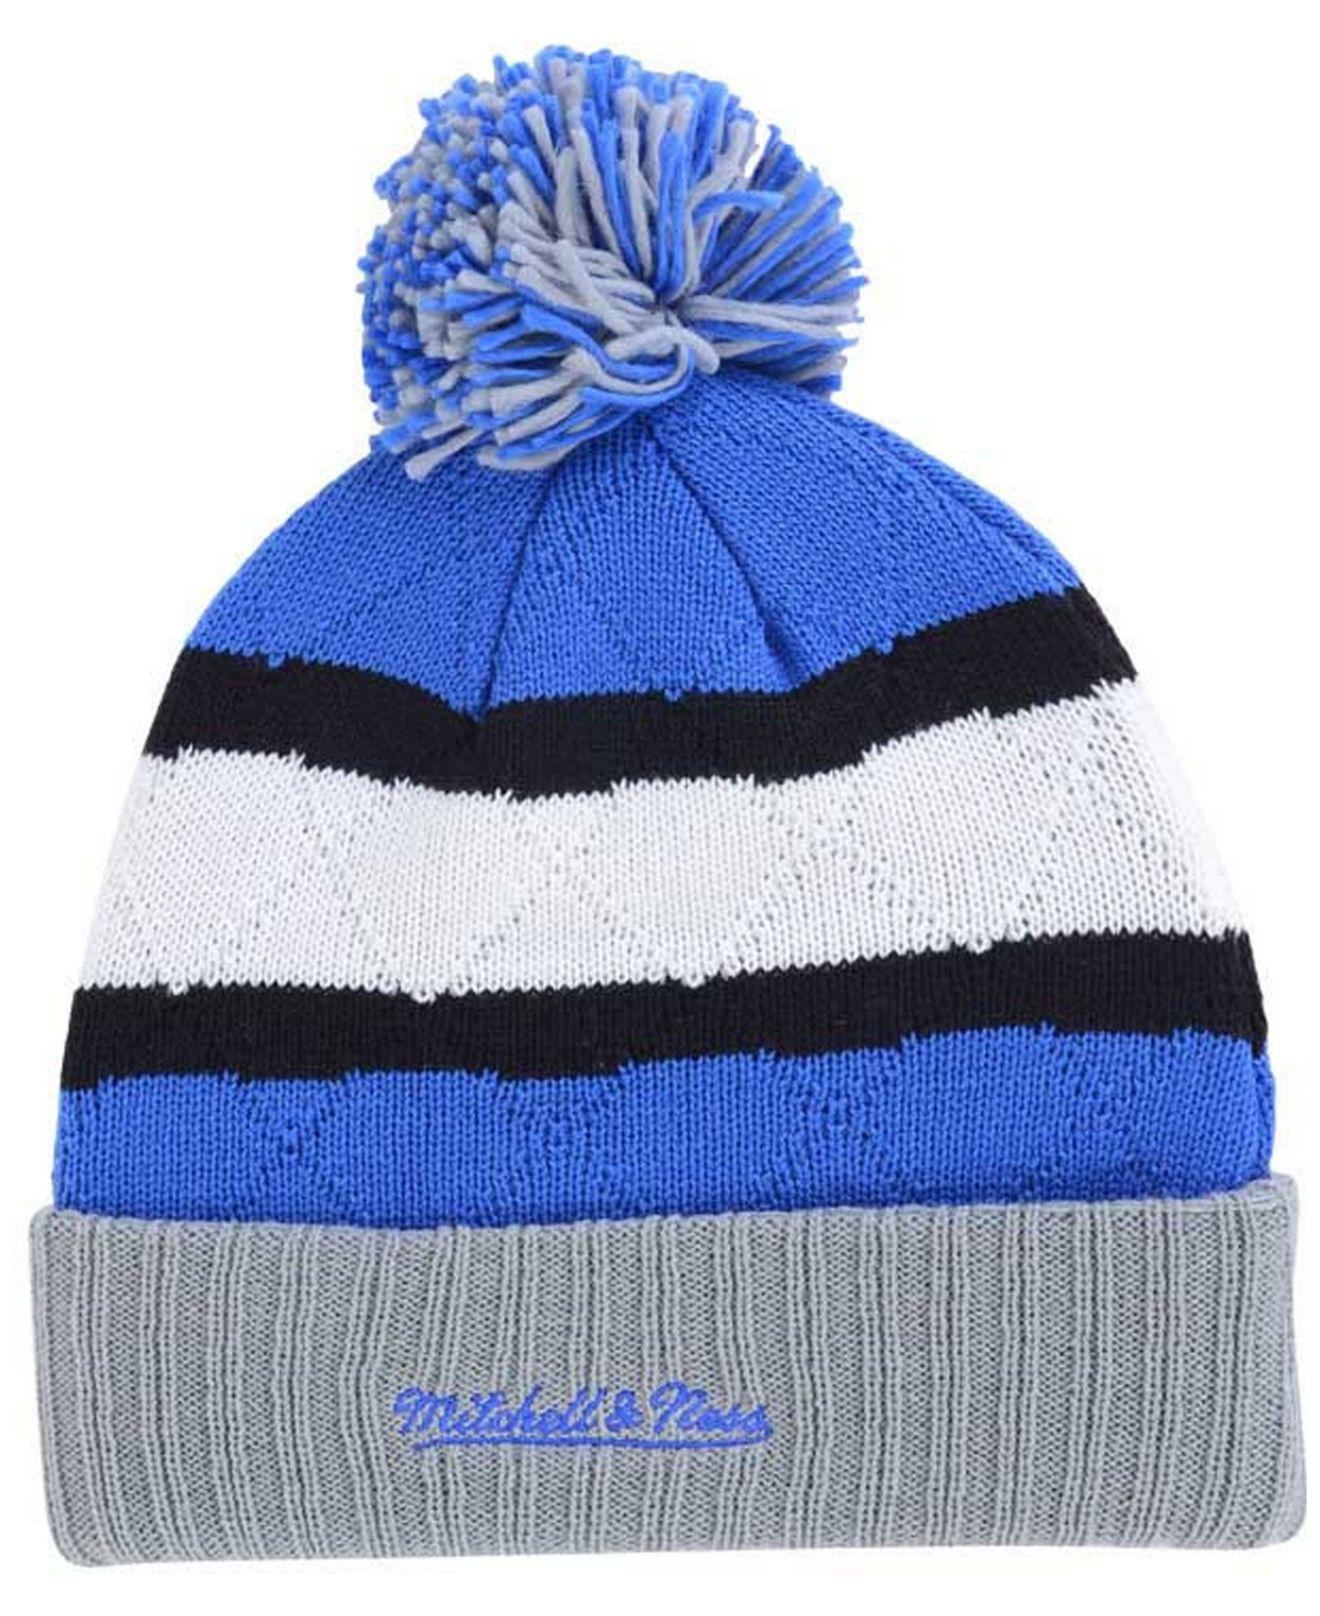 270f467b7c9 ... official store lyst mitchell ness quilted hi five knit hat in blue for  men 28b57 1ac1e